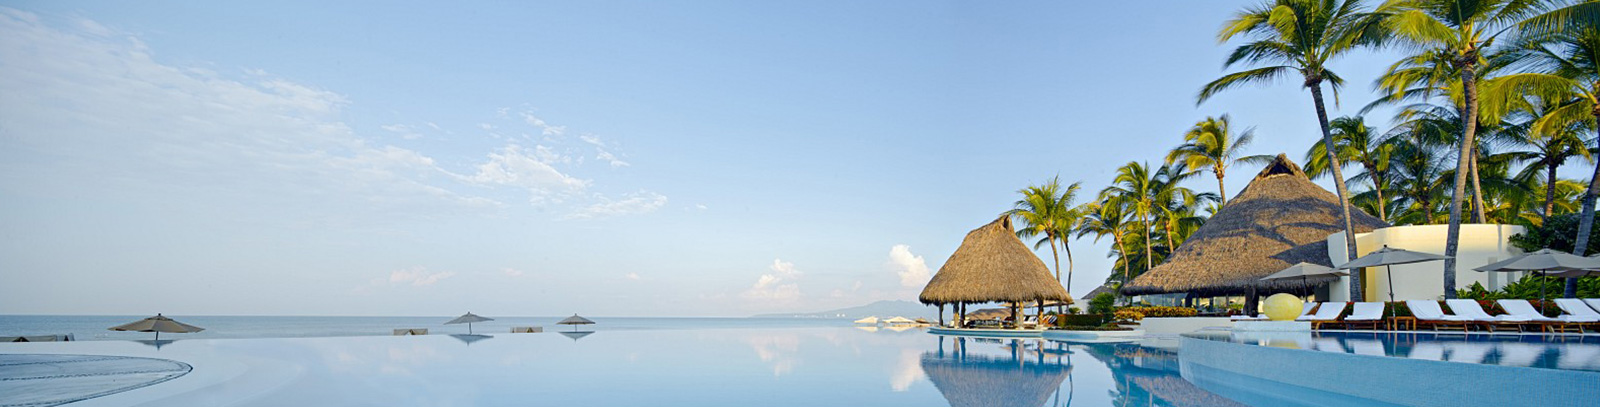 Special Offers at Grand Velas Riviera Nayarit, Mexico